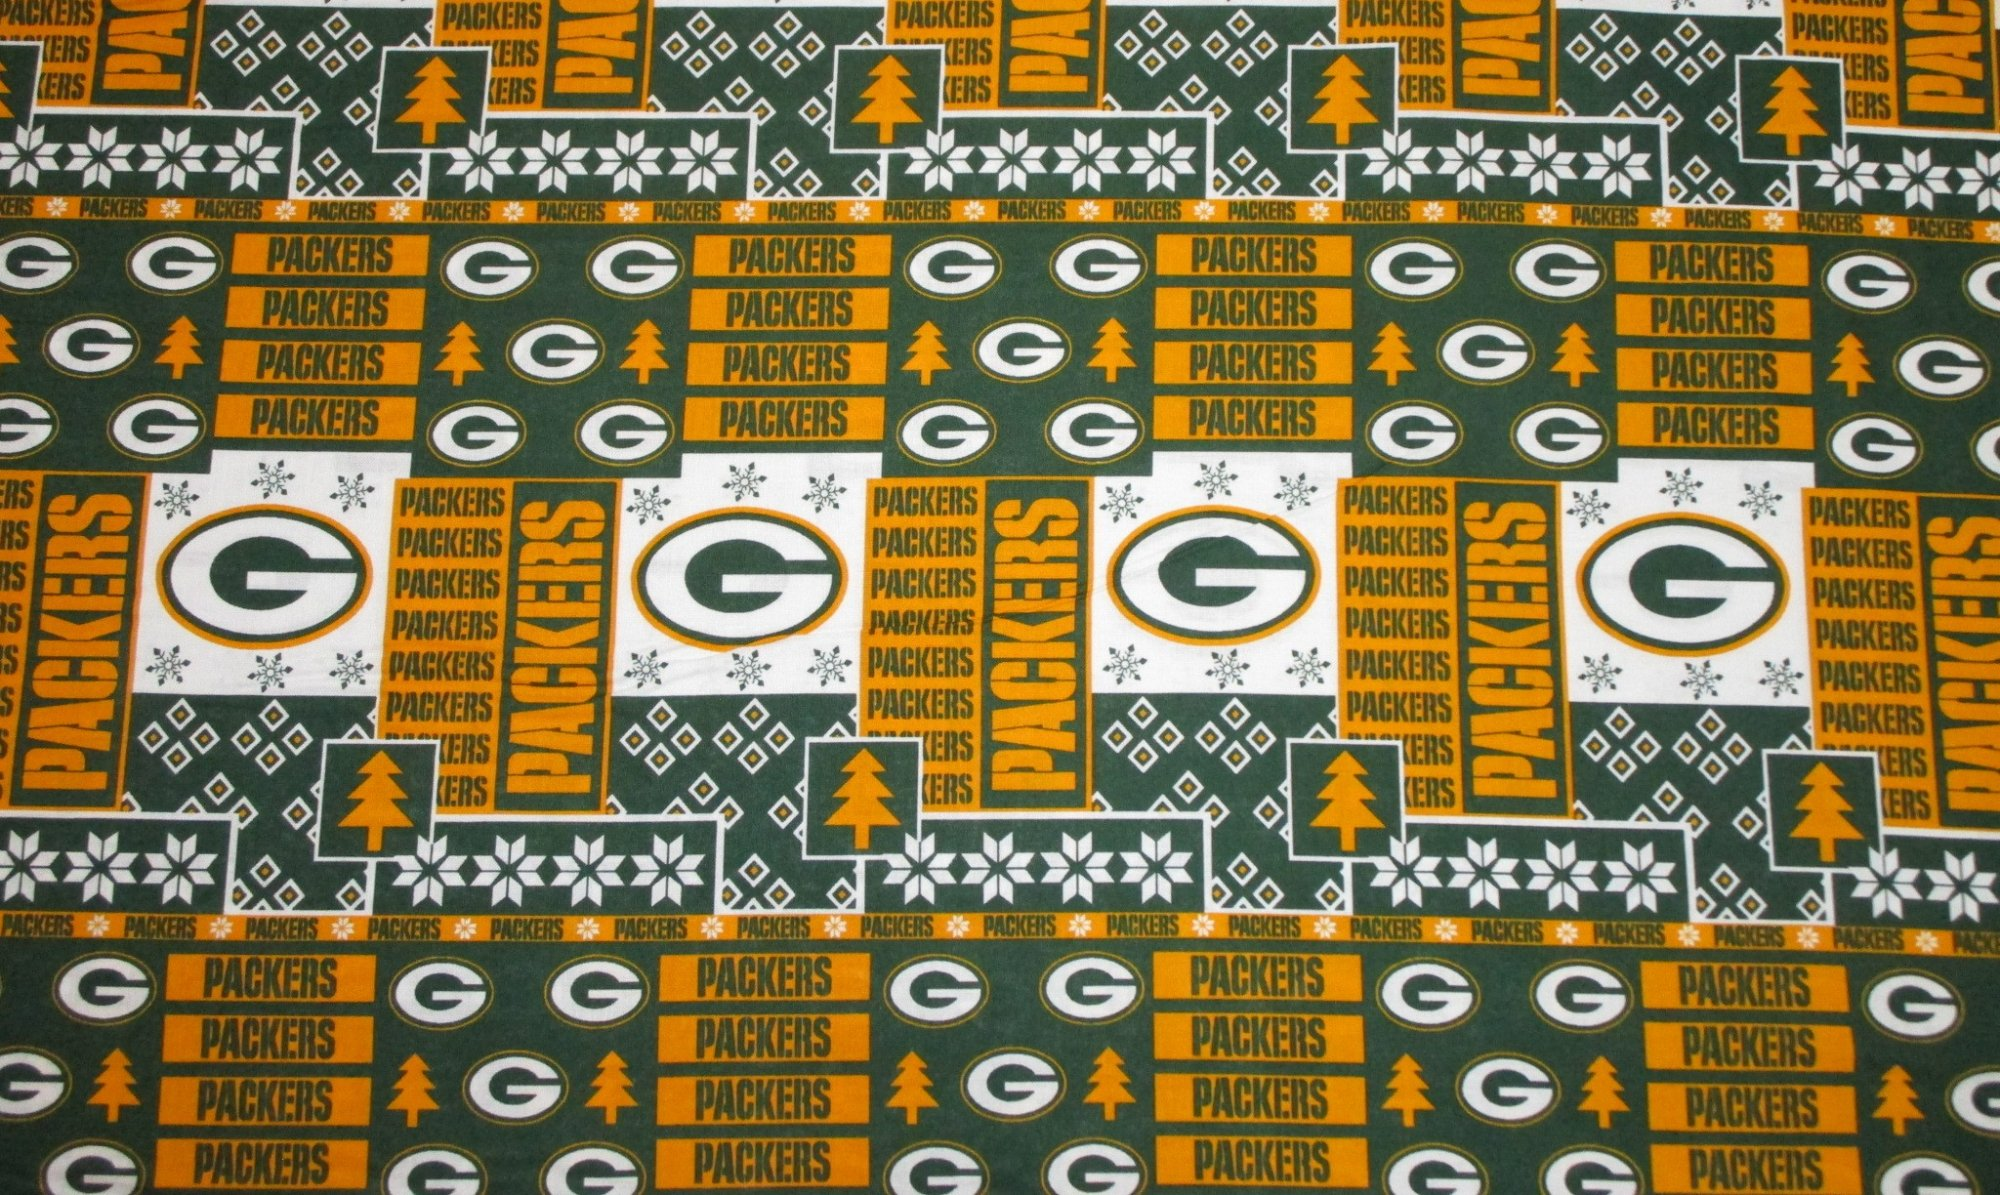 NFL Green Bay Packers 14774 Winter